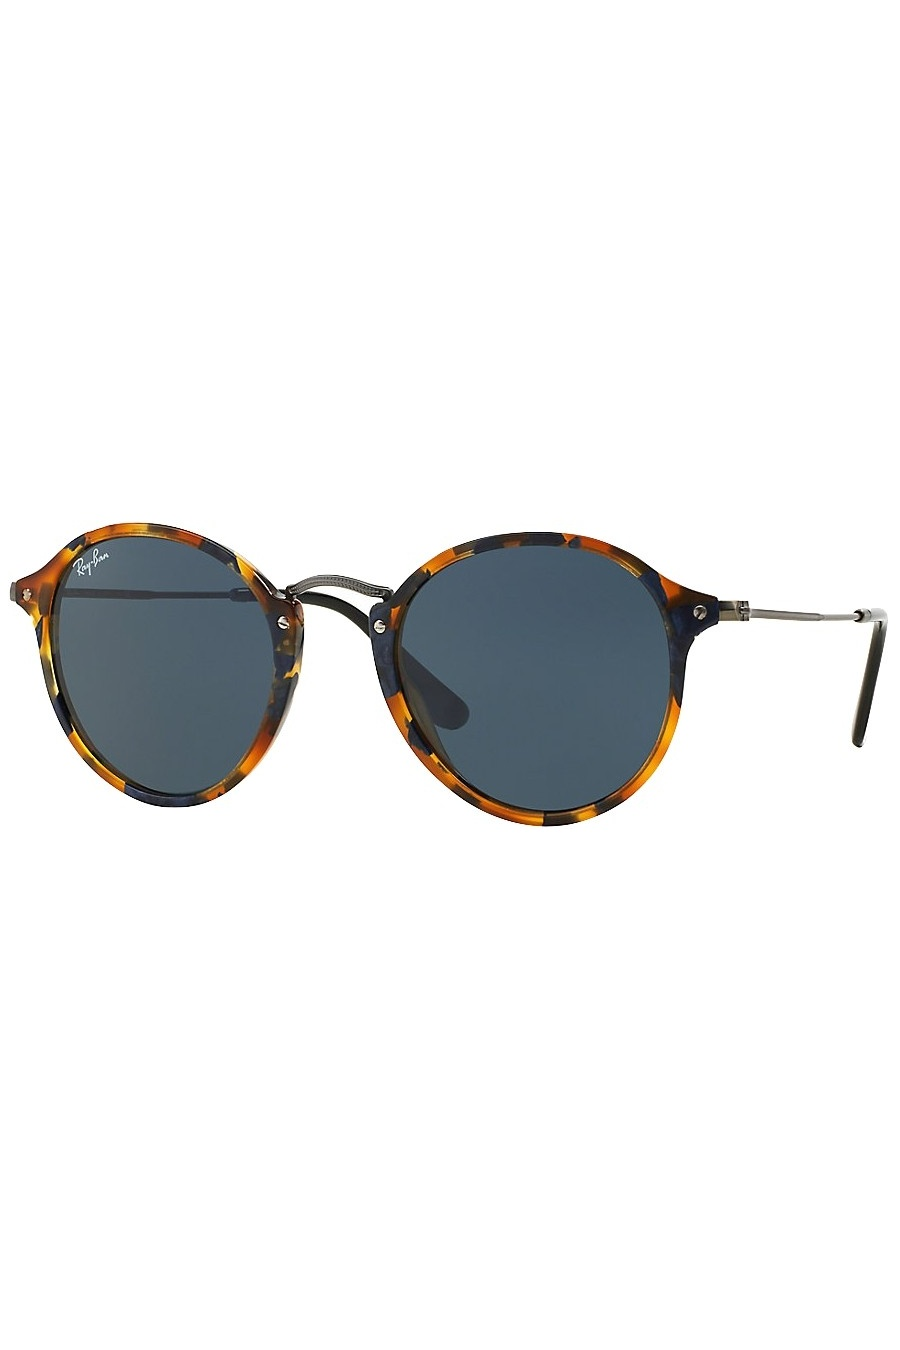 RAY-BAN RB2447 1158R5 49 ROUND FLECK